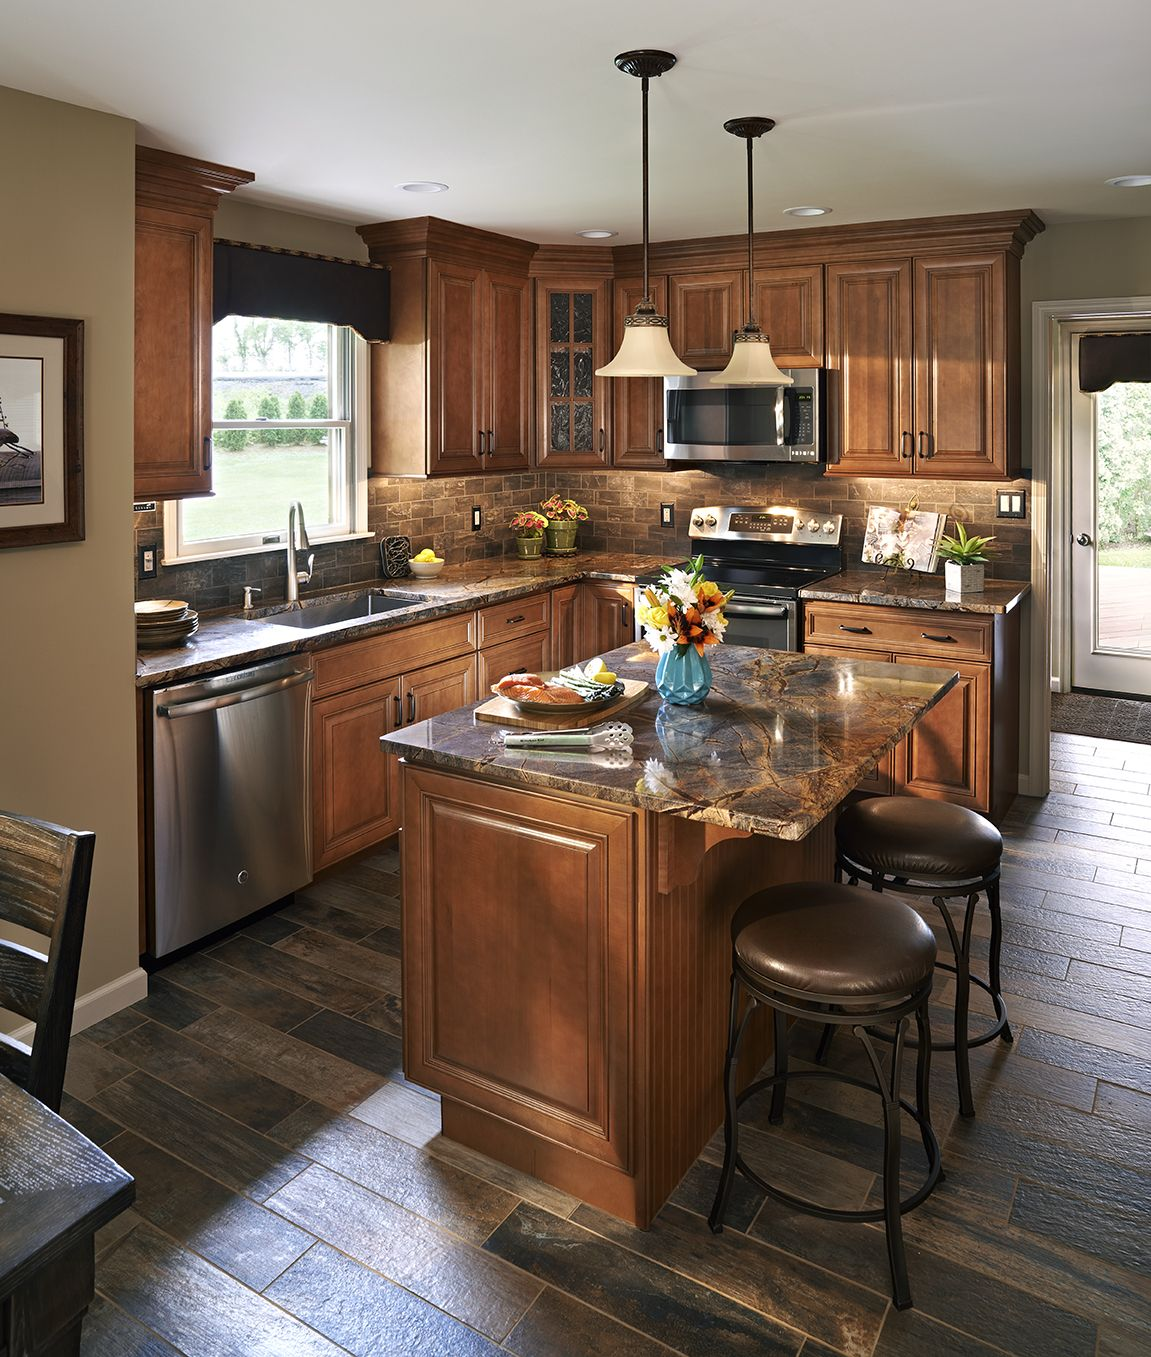 Traditional kitchen and an inviting kitchen